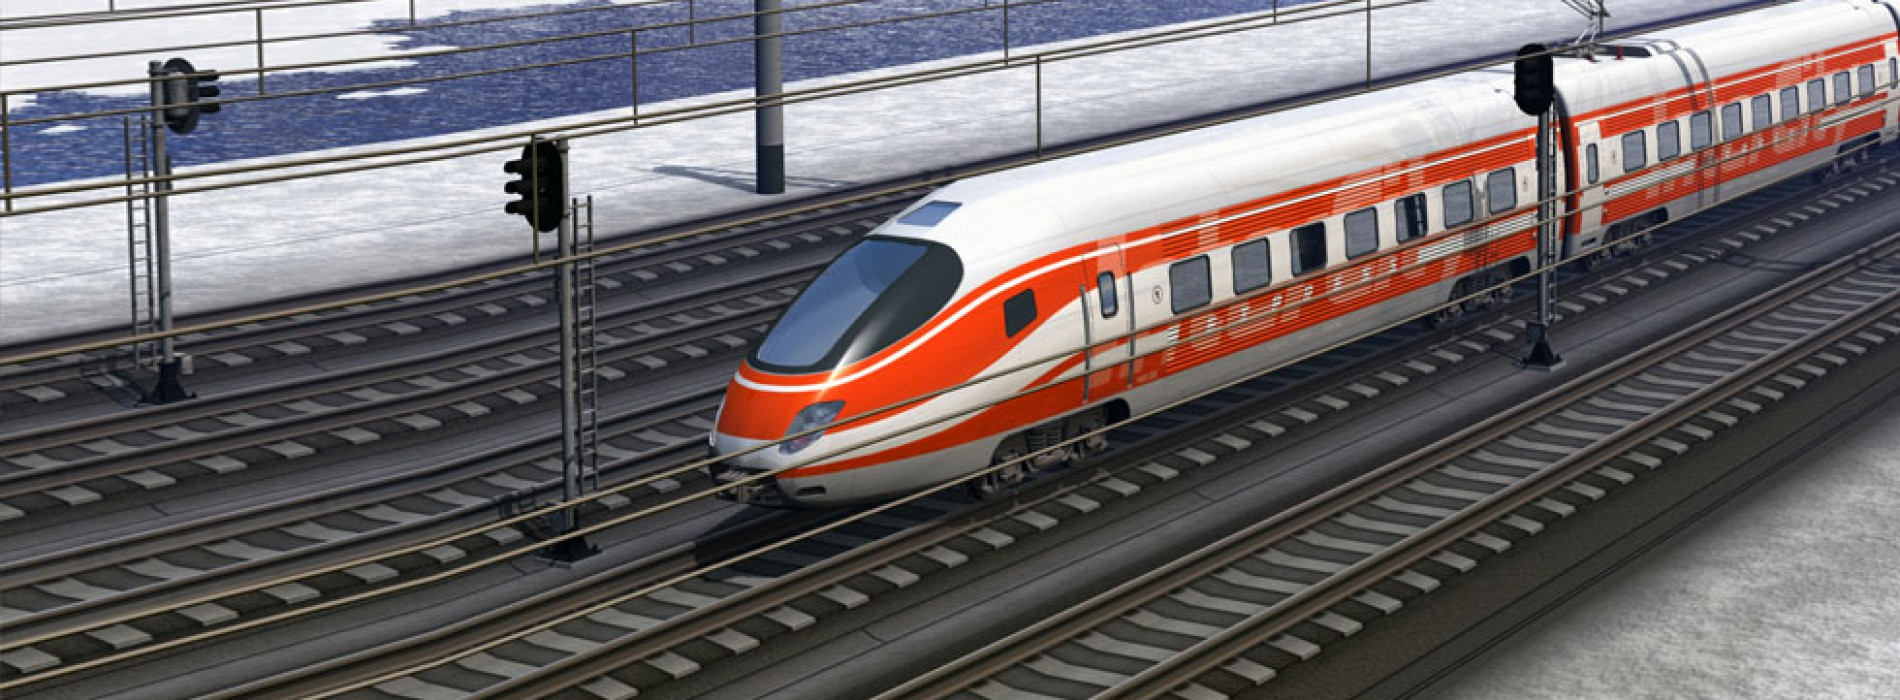 Indian bullet train to travel under the sea